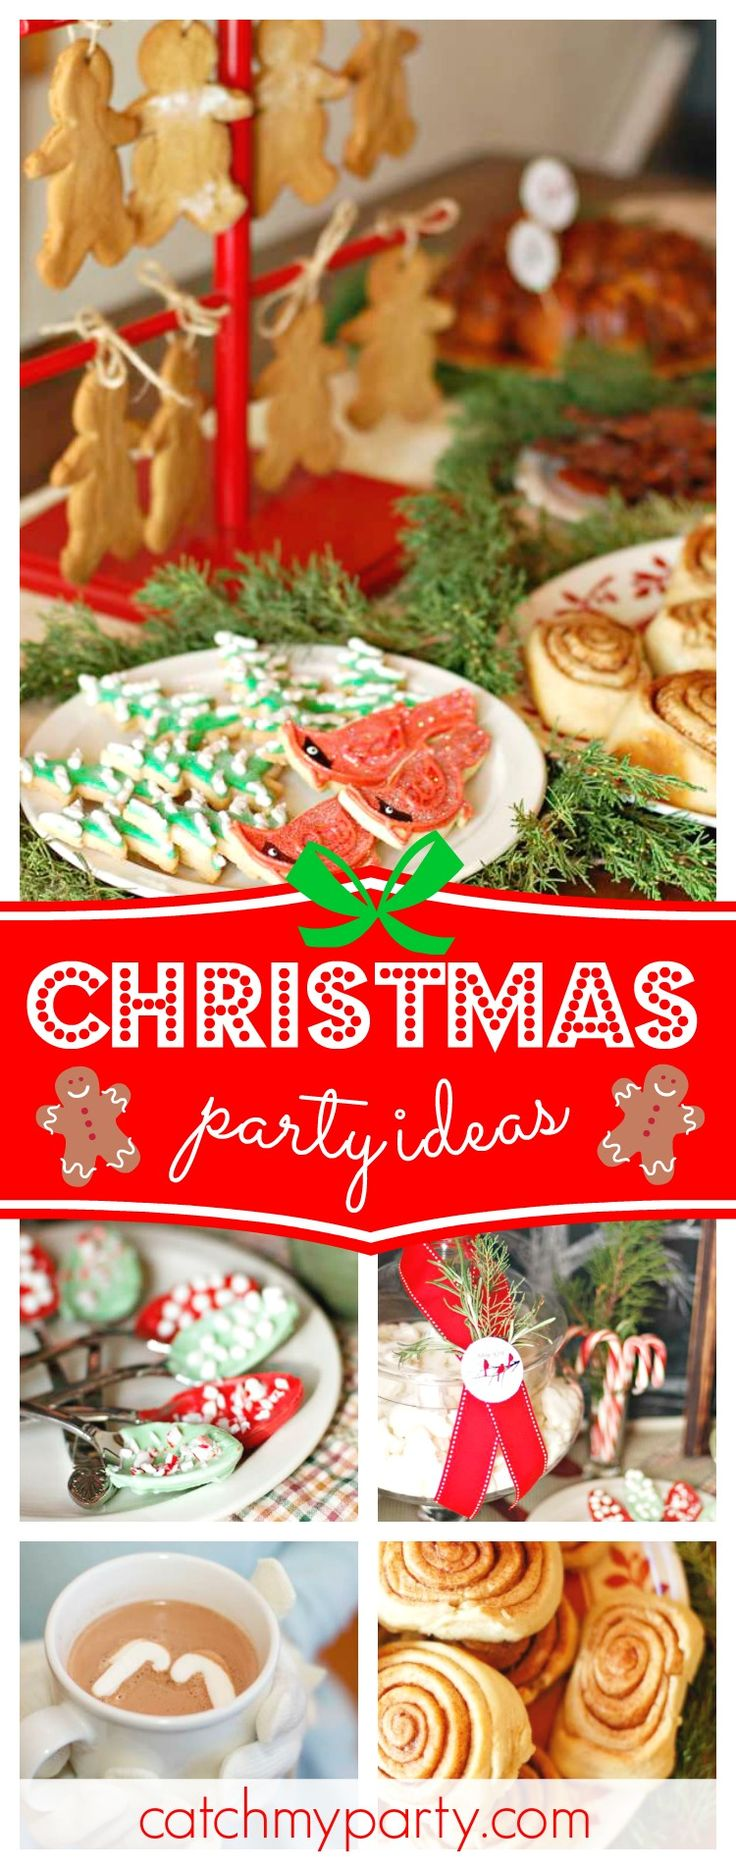 Don't miss this amazing rustic Cabin Christmas party! The cookies are gorgeous!! See more party ideas and share yours at CatchMyParty.com #christmas #holiday #party